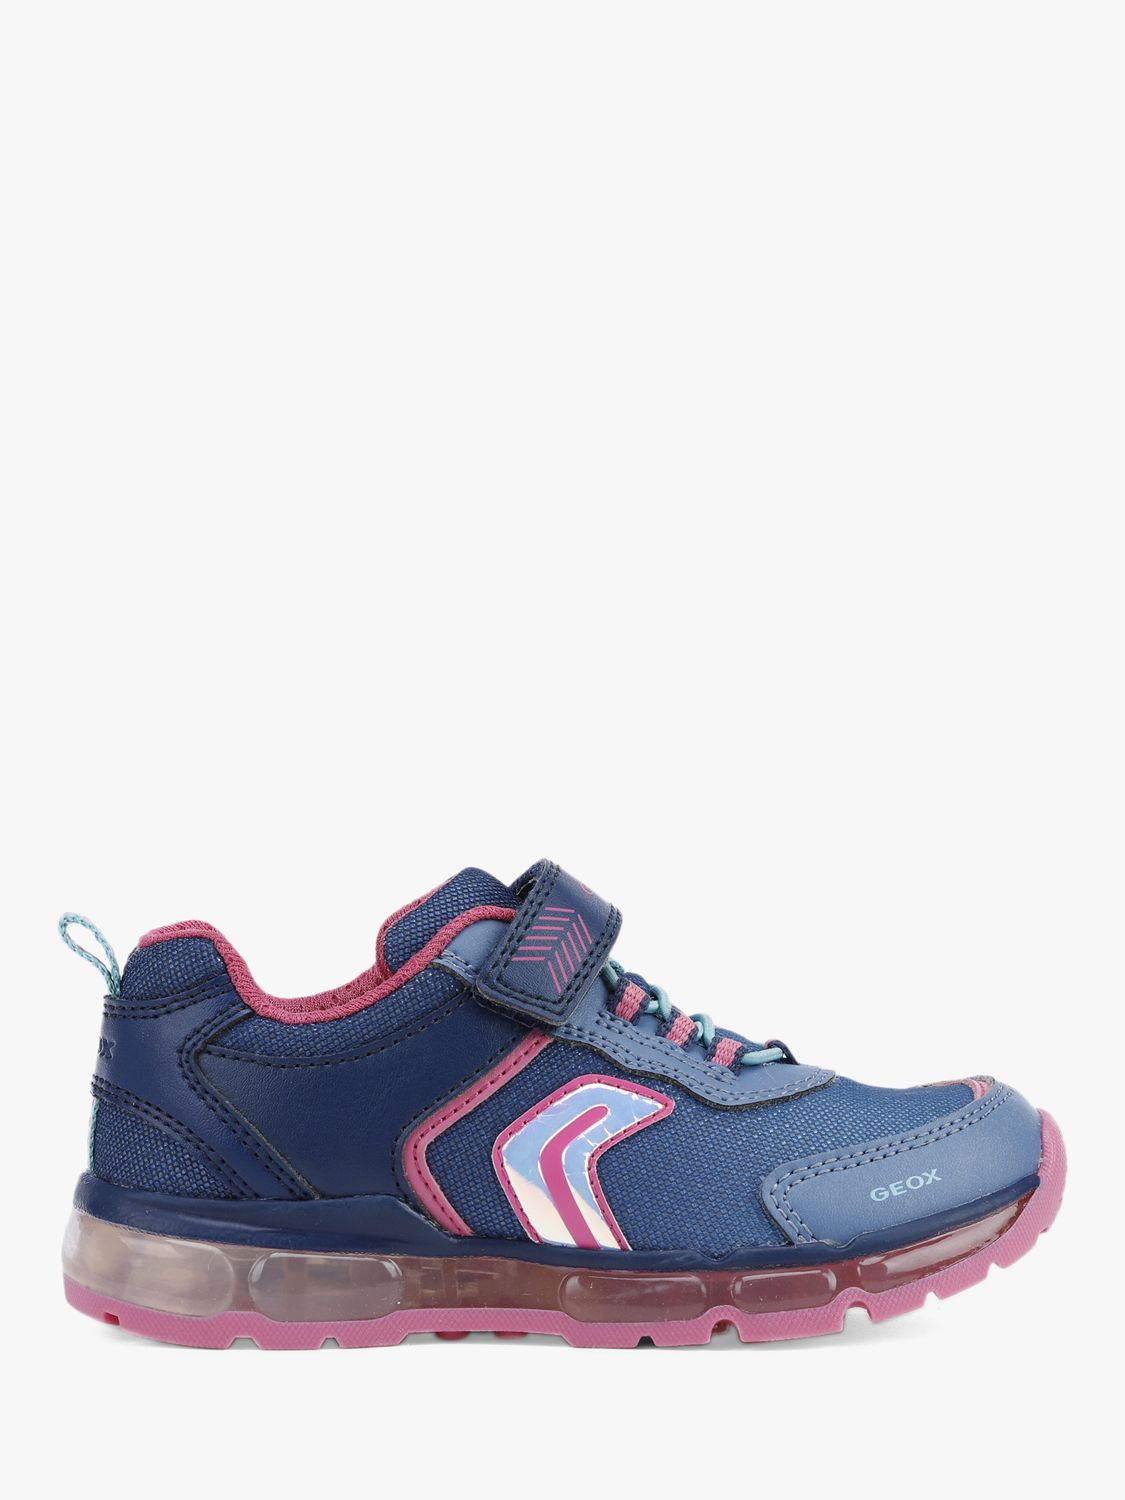 Buy Geox Children's Light Up Android Trainers, Navy/Pink, 24 Online at www.retrievedmagnetic.com